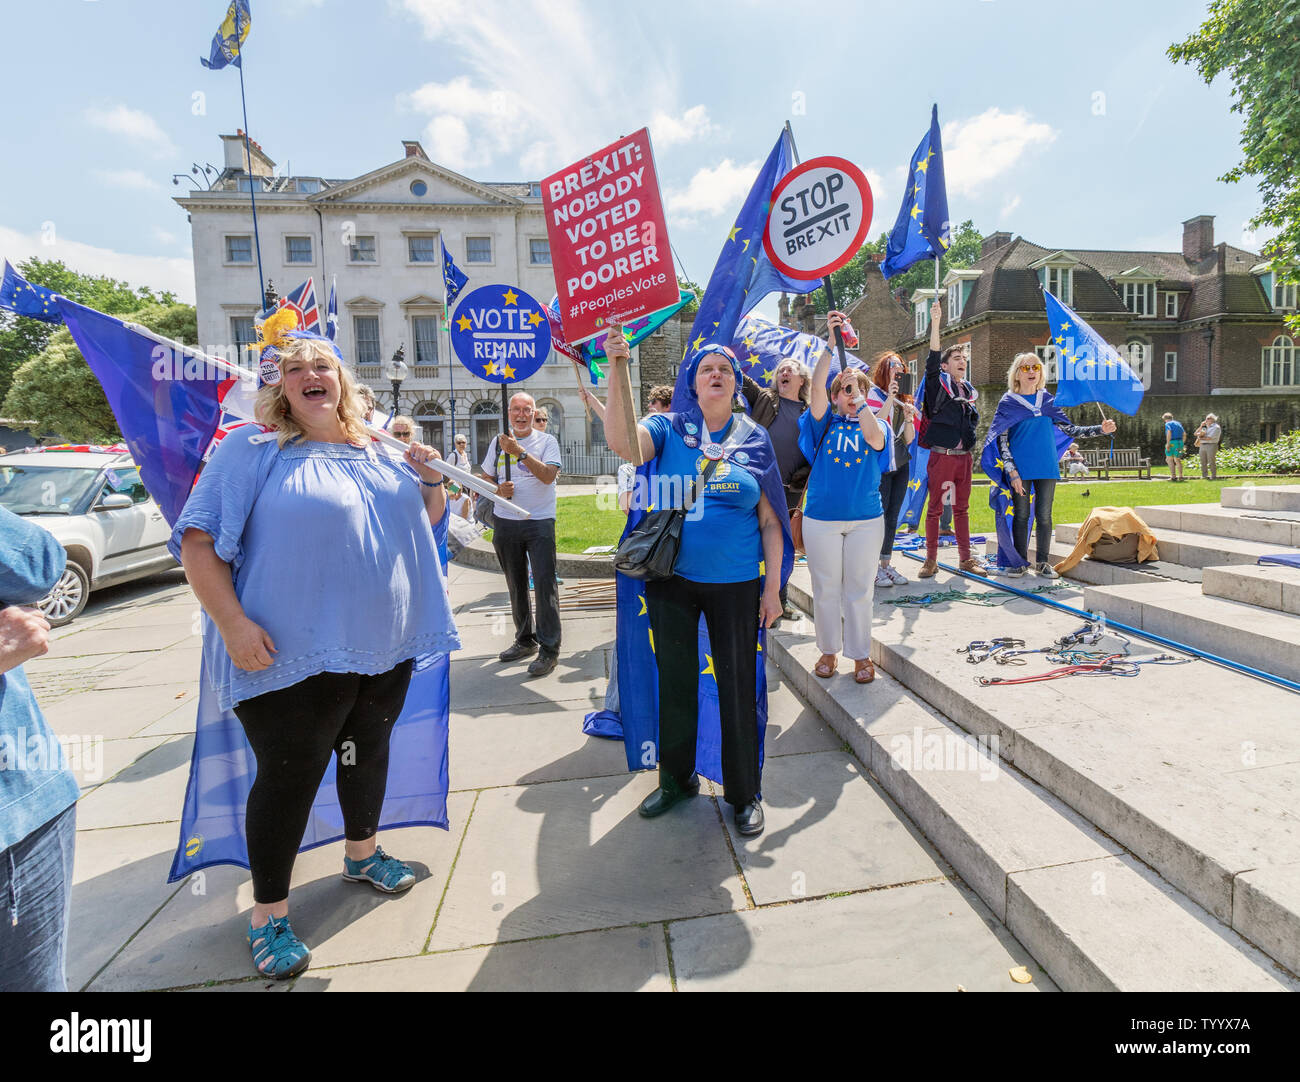 London / UK - June 26th 2019 - Pro-EU anti-Brexit protesters holding European Union flags and stop Brexit signs opposite Parliament in Westminster - Stock Image